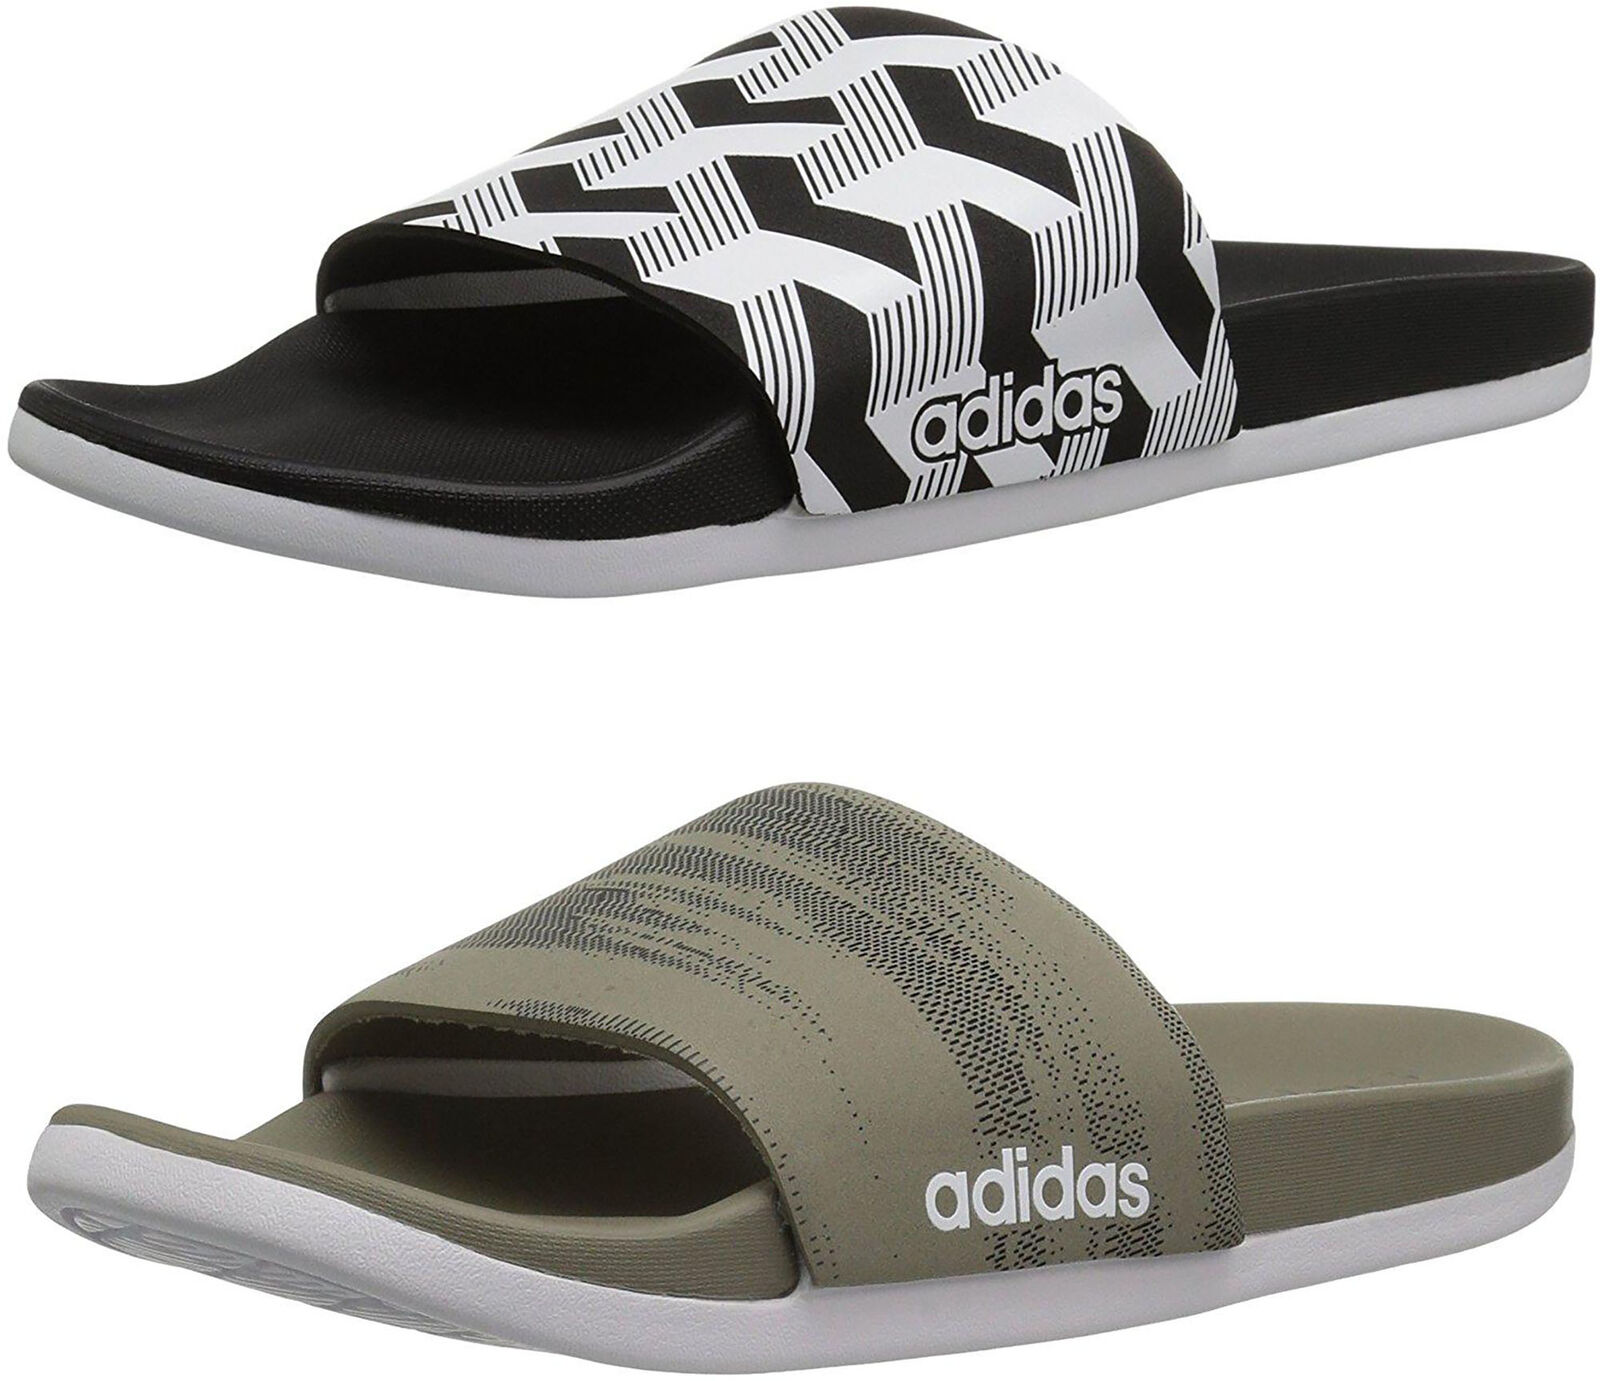 761daeb1e adidas Men s Adilette Cloudfoam Plus Link Slide Sandals